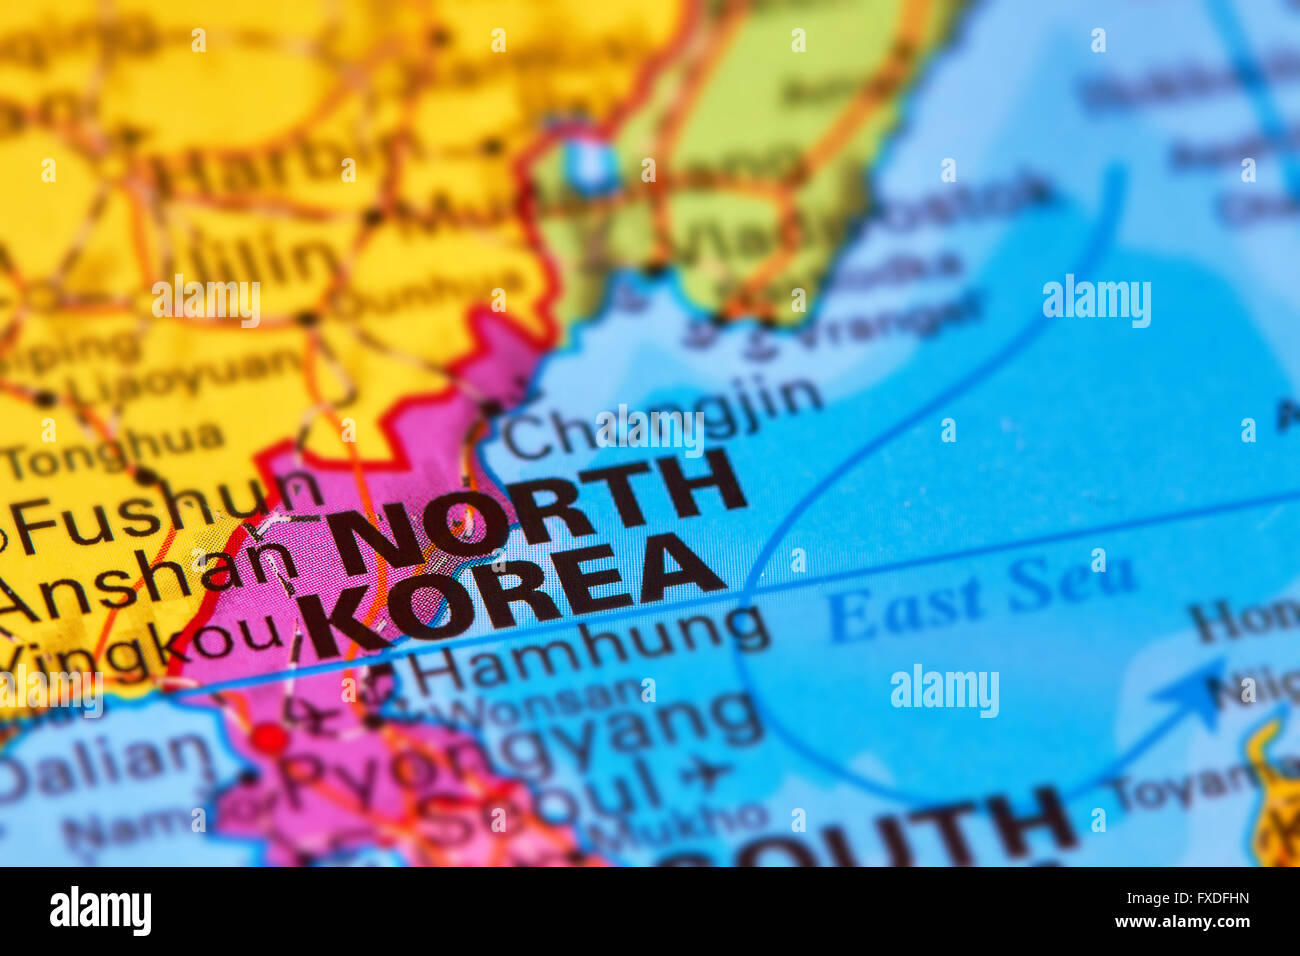 North Korea Asian Country On The World Map Stock Photo Royalty - World map north korea